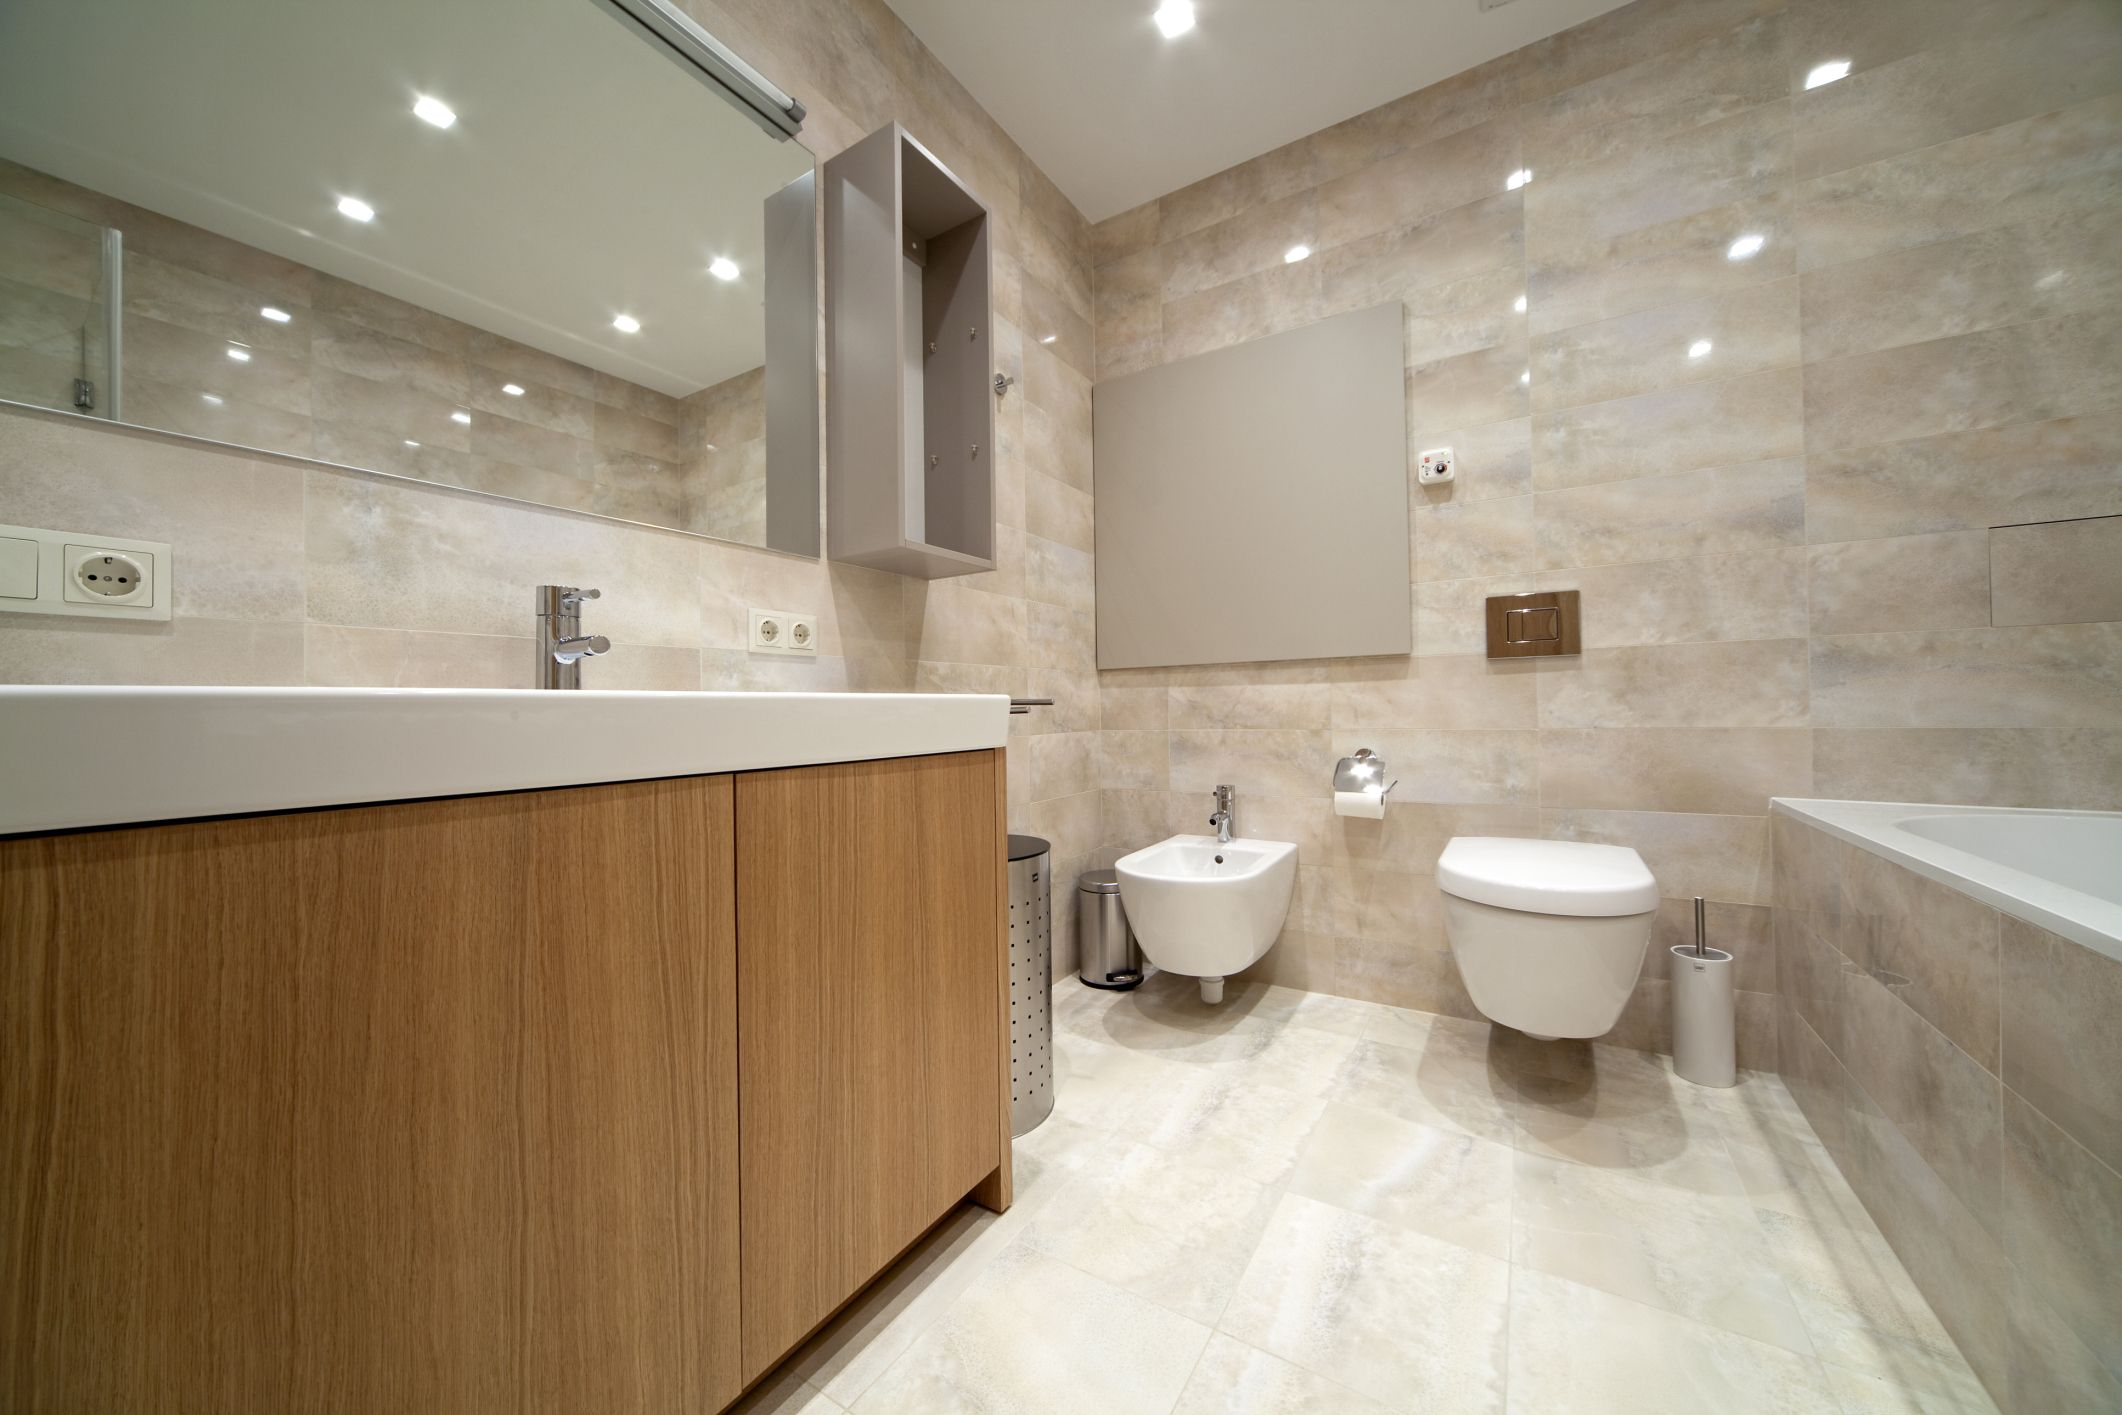 Bathroom Remodel Cost Sacramento best bathroom remodel checklist on with hd resolution x renovation